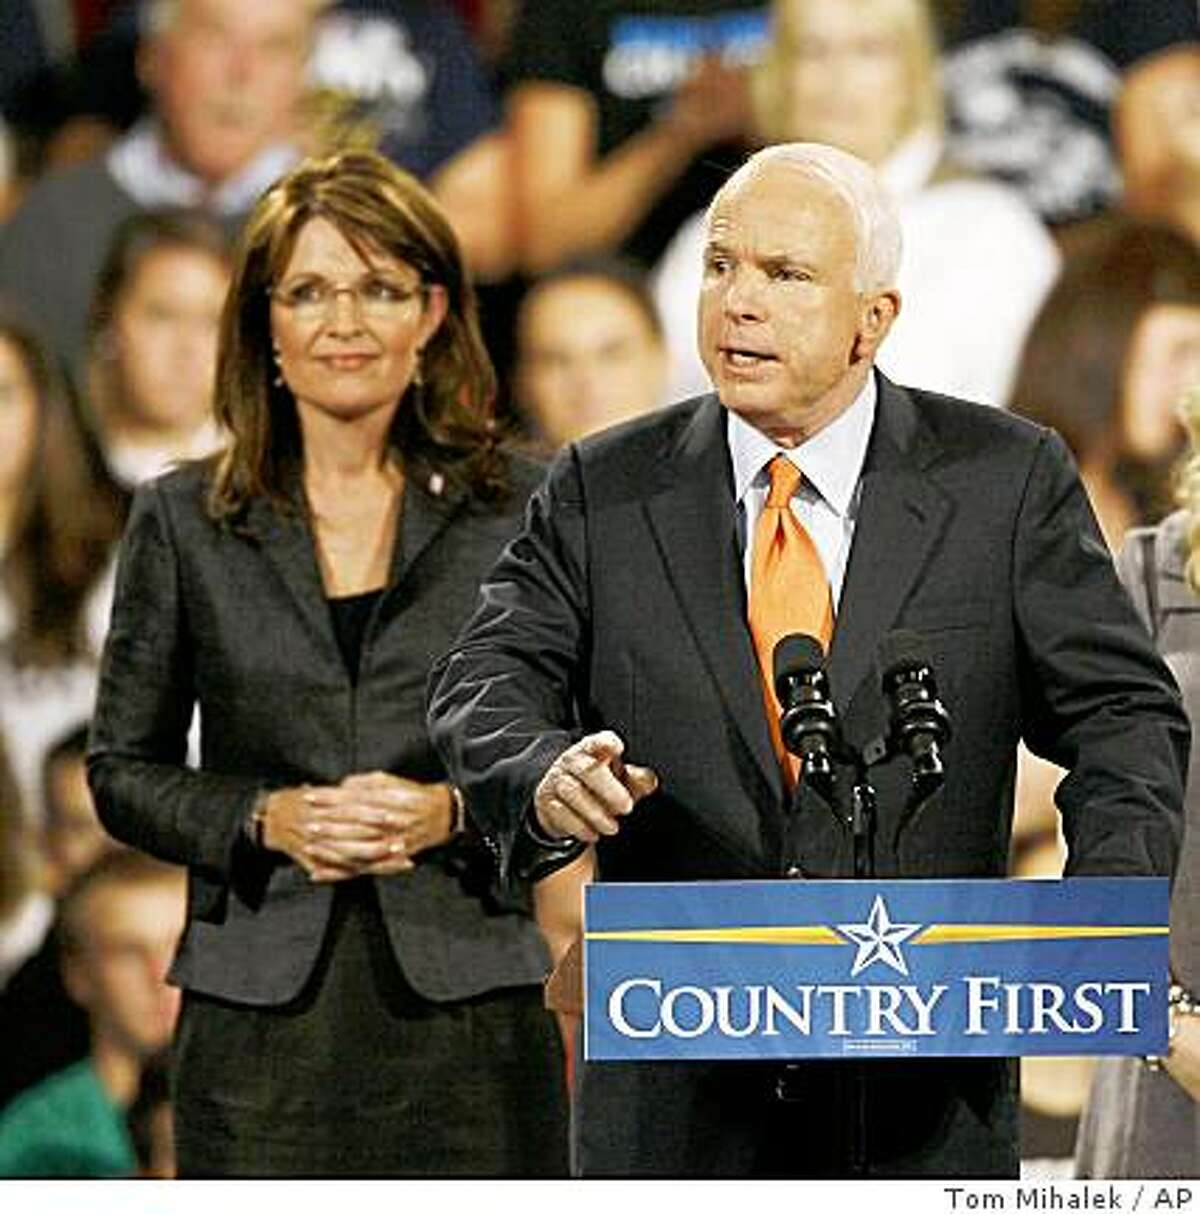 Republican presidential candidate, Sen. John McCain, R-Ariz., speaks as Republican vice-presidential candidate, Alaska Gov. Sarah Palin, left, looks on during a rally held at Lehigh University in Bethlehem, Pa, Wednesday, Oct. 8, 2008. McCain spoke about fixing the economy, funding defense and health care. (AP Photo/Tom Mihalek)